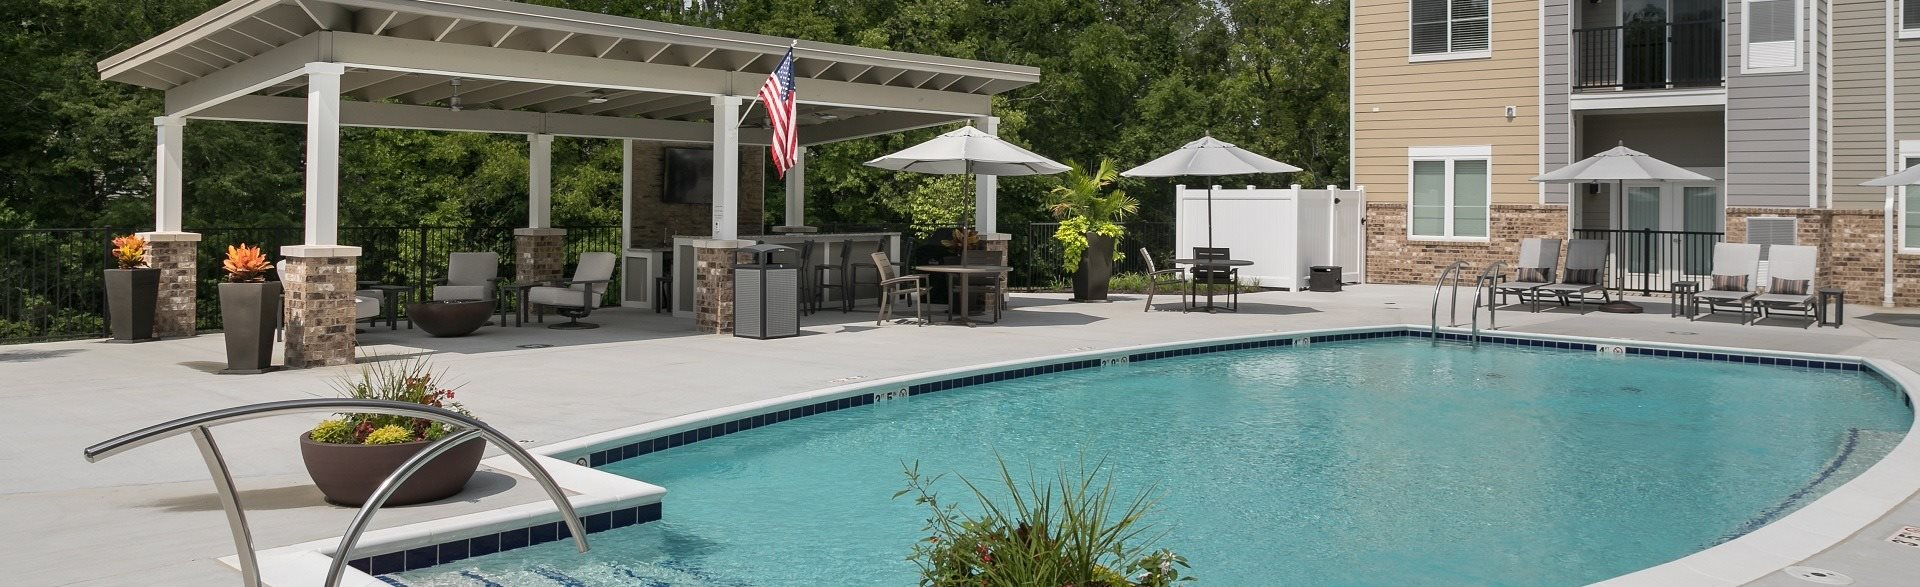 The Trace pool deck